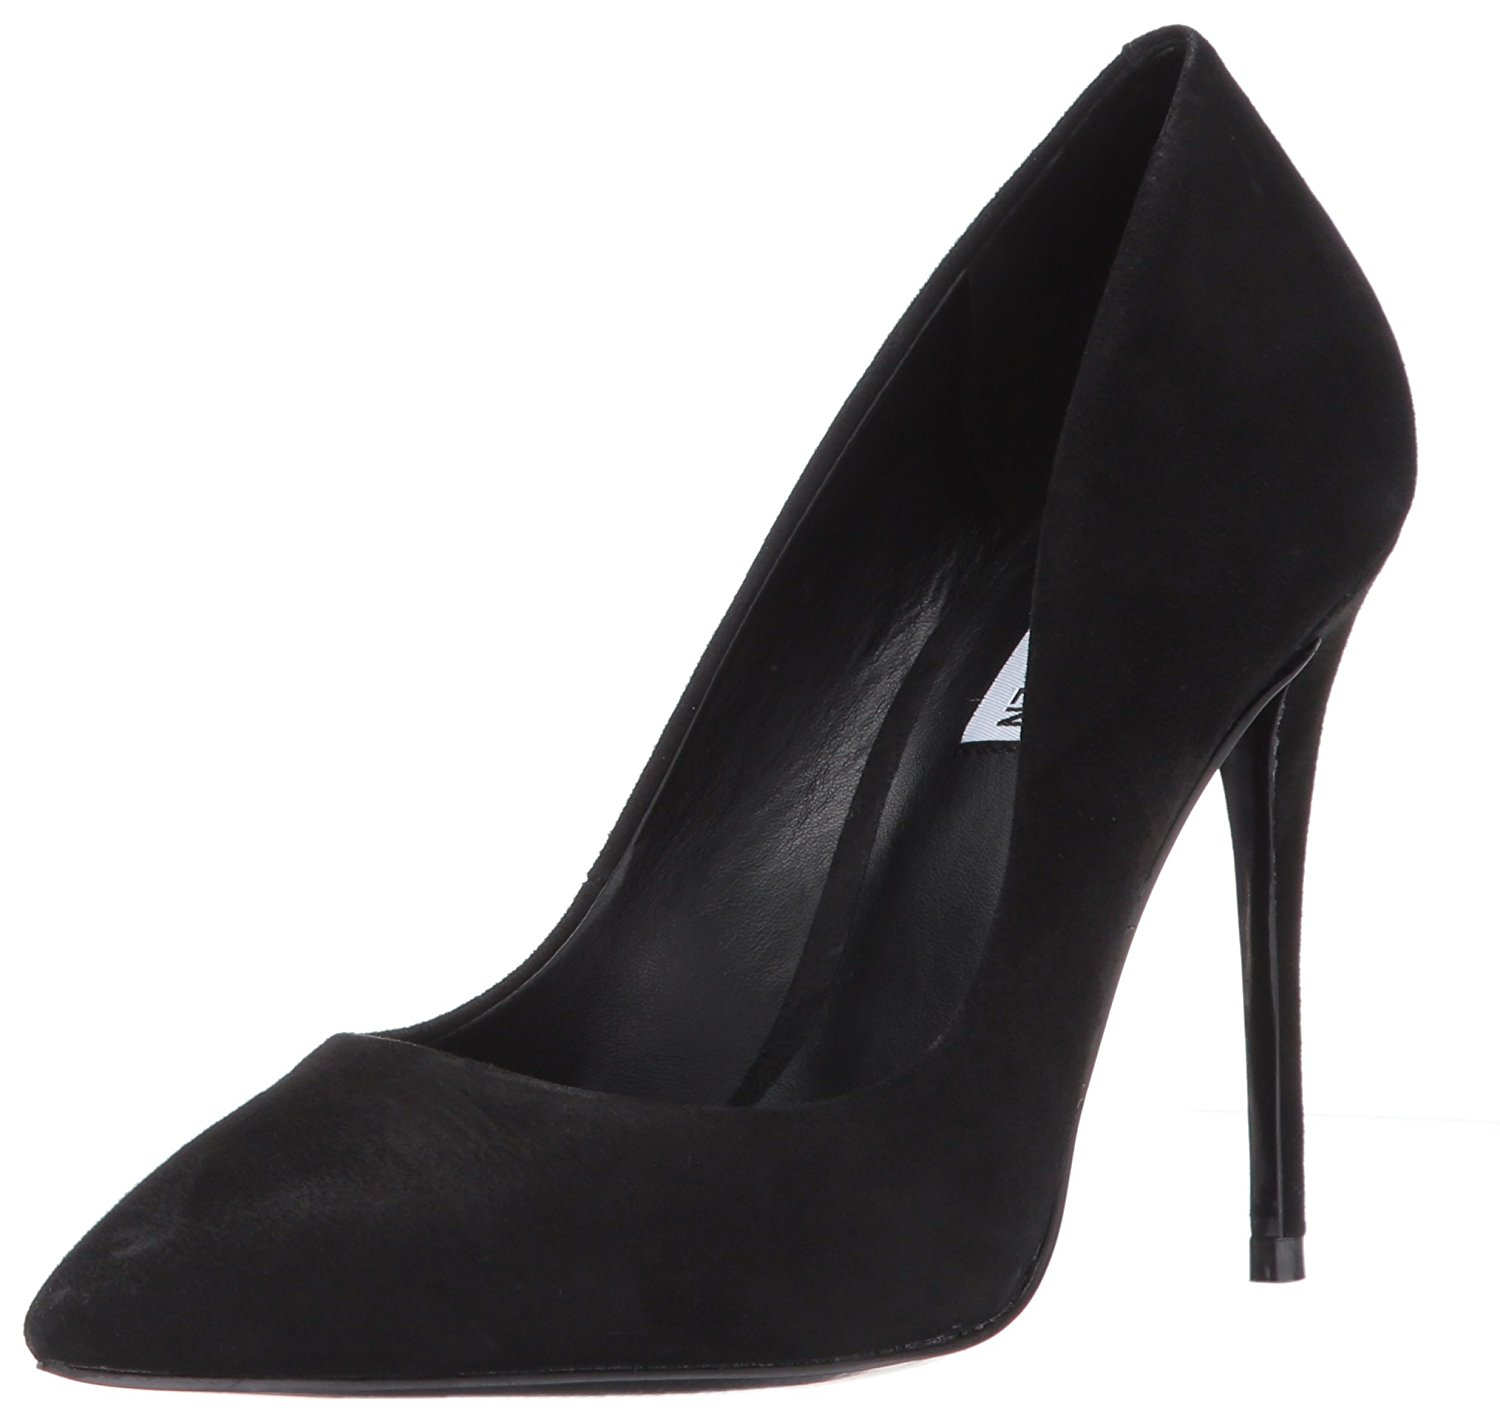 69bf9e400e1 Details about Steve Madden Womens Daisie Leather Pointed Toe Classic, Black  Suede, Size 8.0 wy